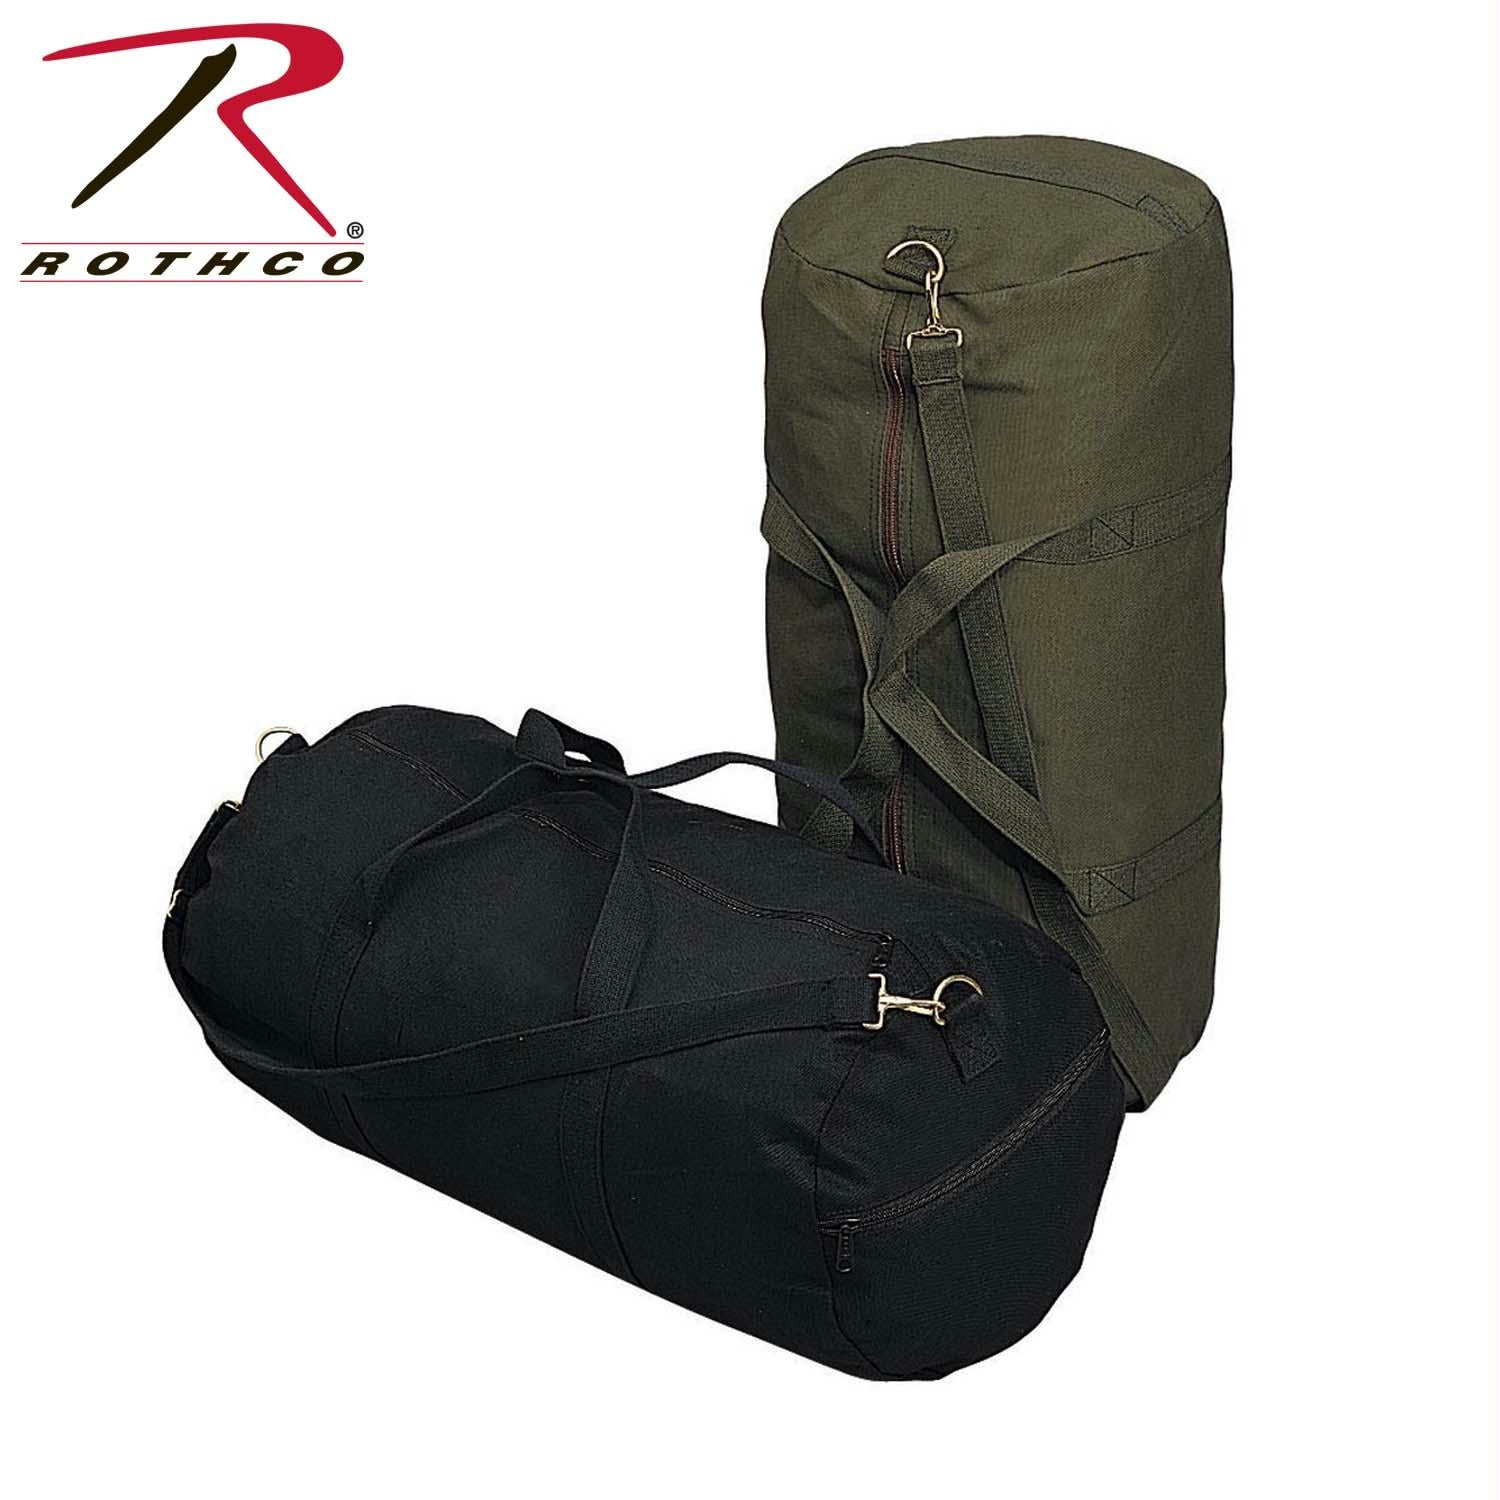 Rothco Canvas Shoulder Duffle Bag - 24 Inch - Olive Drab